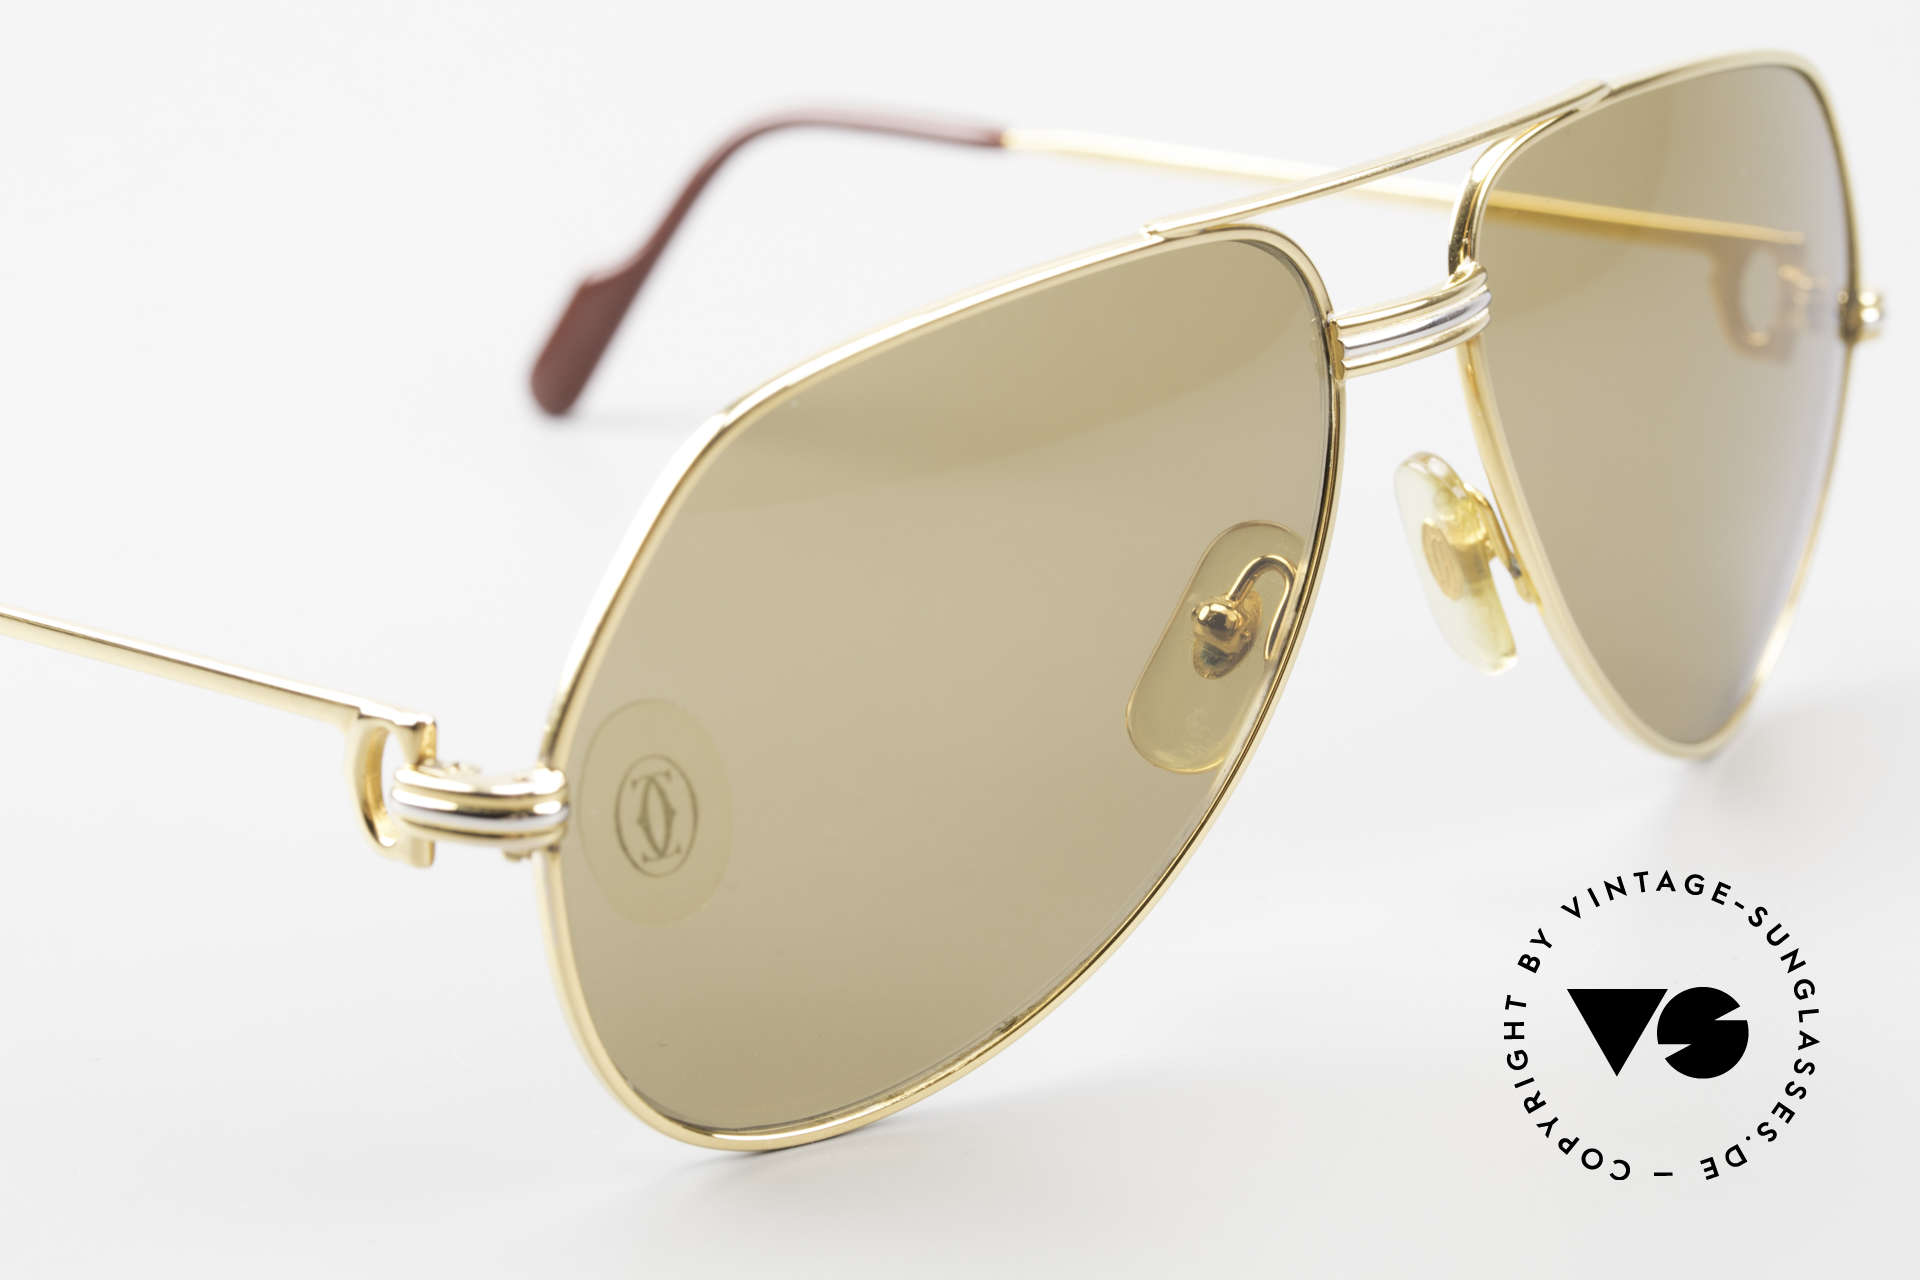 Cartier Vendome LC - M Mystic Cartier Mineral Lenses, ! BREATH on the sun lenses to make the logo VISIBLE!, Made for Men